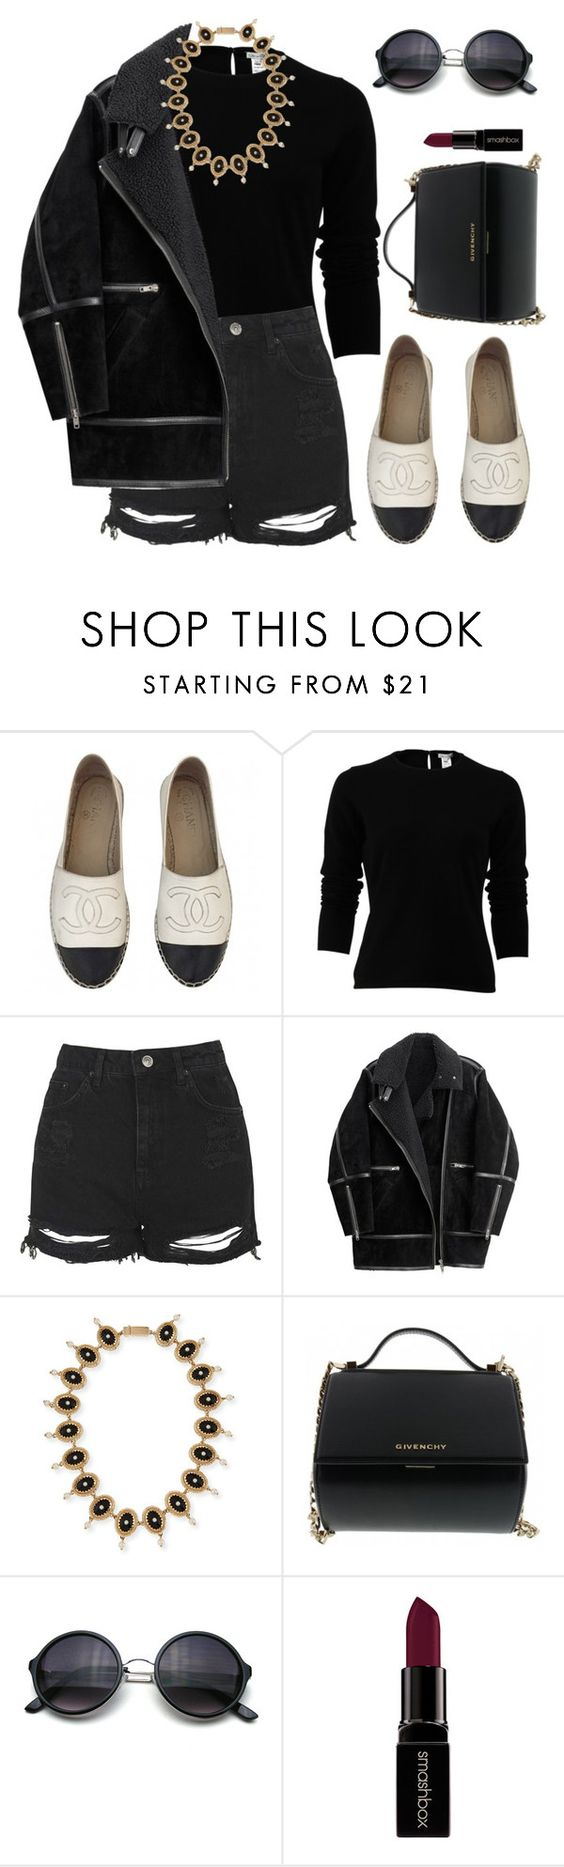 """""""Untitled #1820"""" by lauraafreedom ❤ liked on Polyvore featuring Chanel, Oscar de la Renta, Topshop, H&M, Givenchy, Smashbox, women's clothing, women's fashion, women and female"""